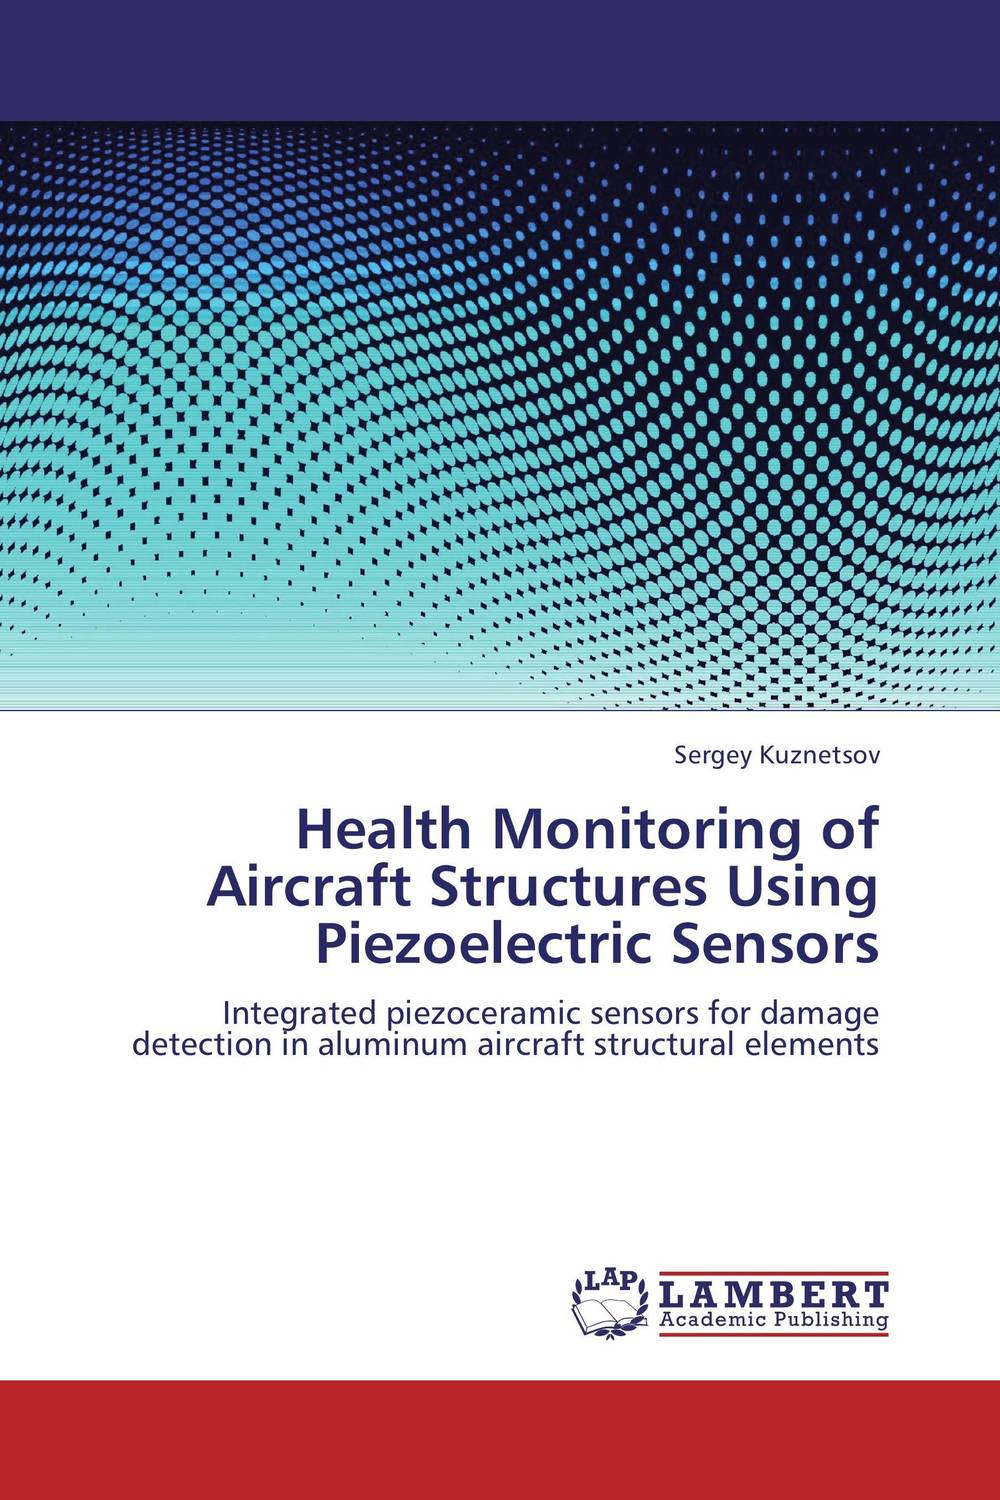 все цены на Health Monitoring of Aircraft Structures Using Piezoelectric Sensors